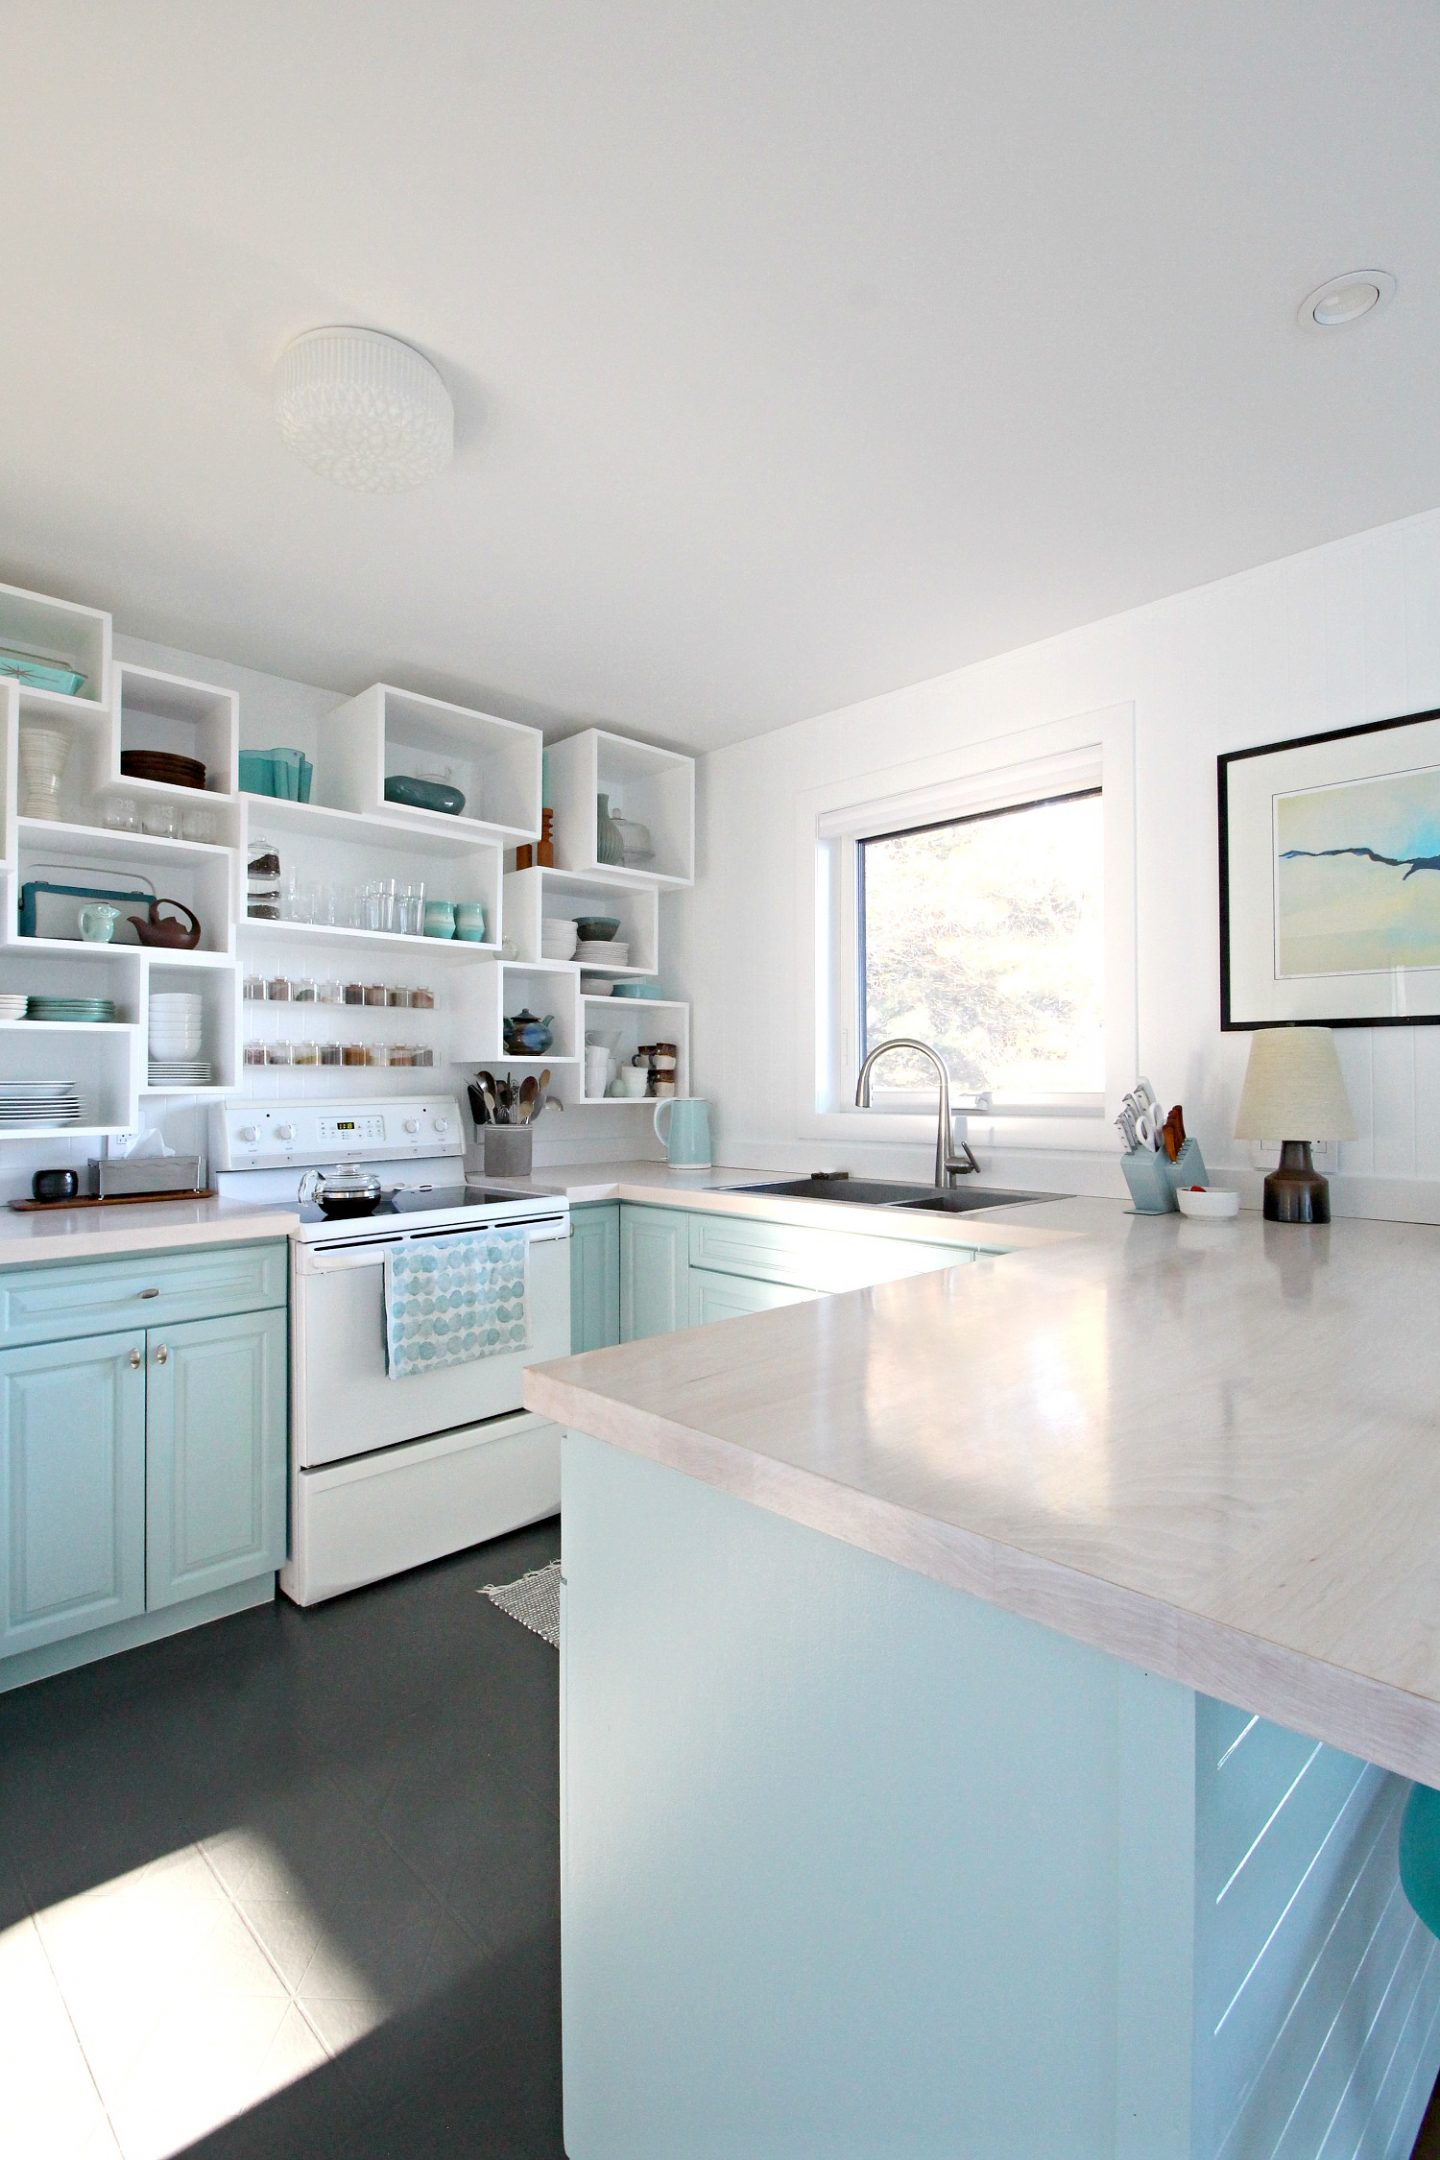 Sherwin Williams Watery on Kitchen Cabinets